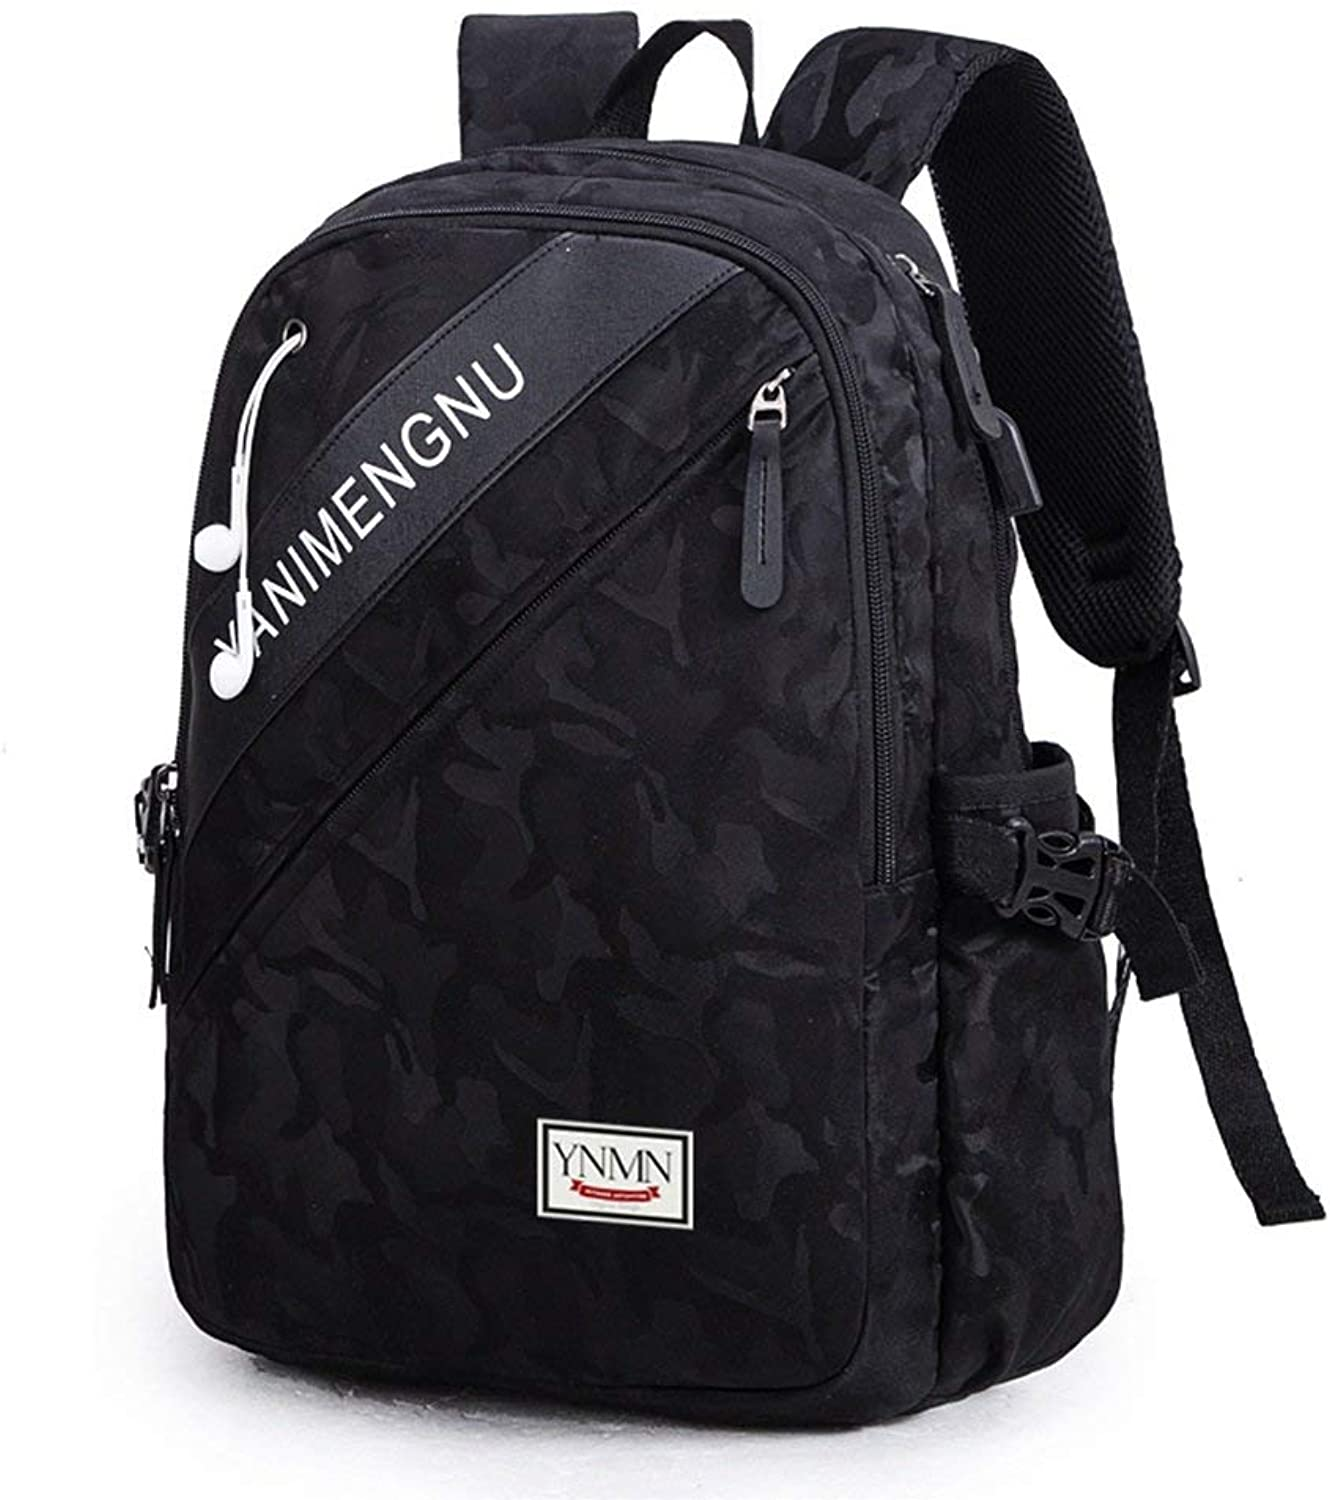 Men's Fashion Backpack Casual Daypacks Backpack The New Students Bag Male Trend Laptop Bag Strong Durable Multifunction (color   A, Size   M)